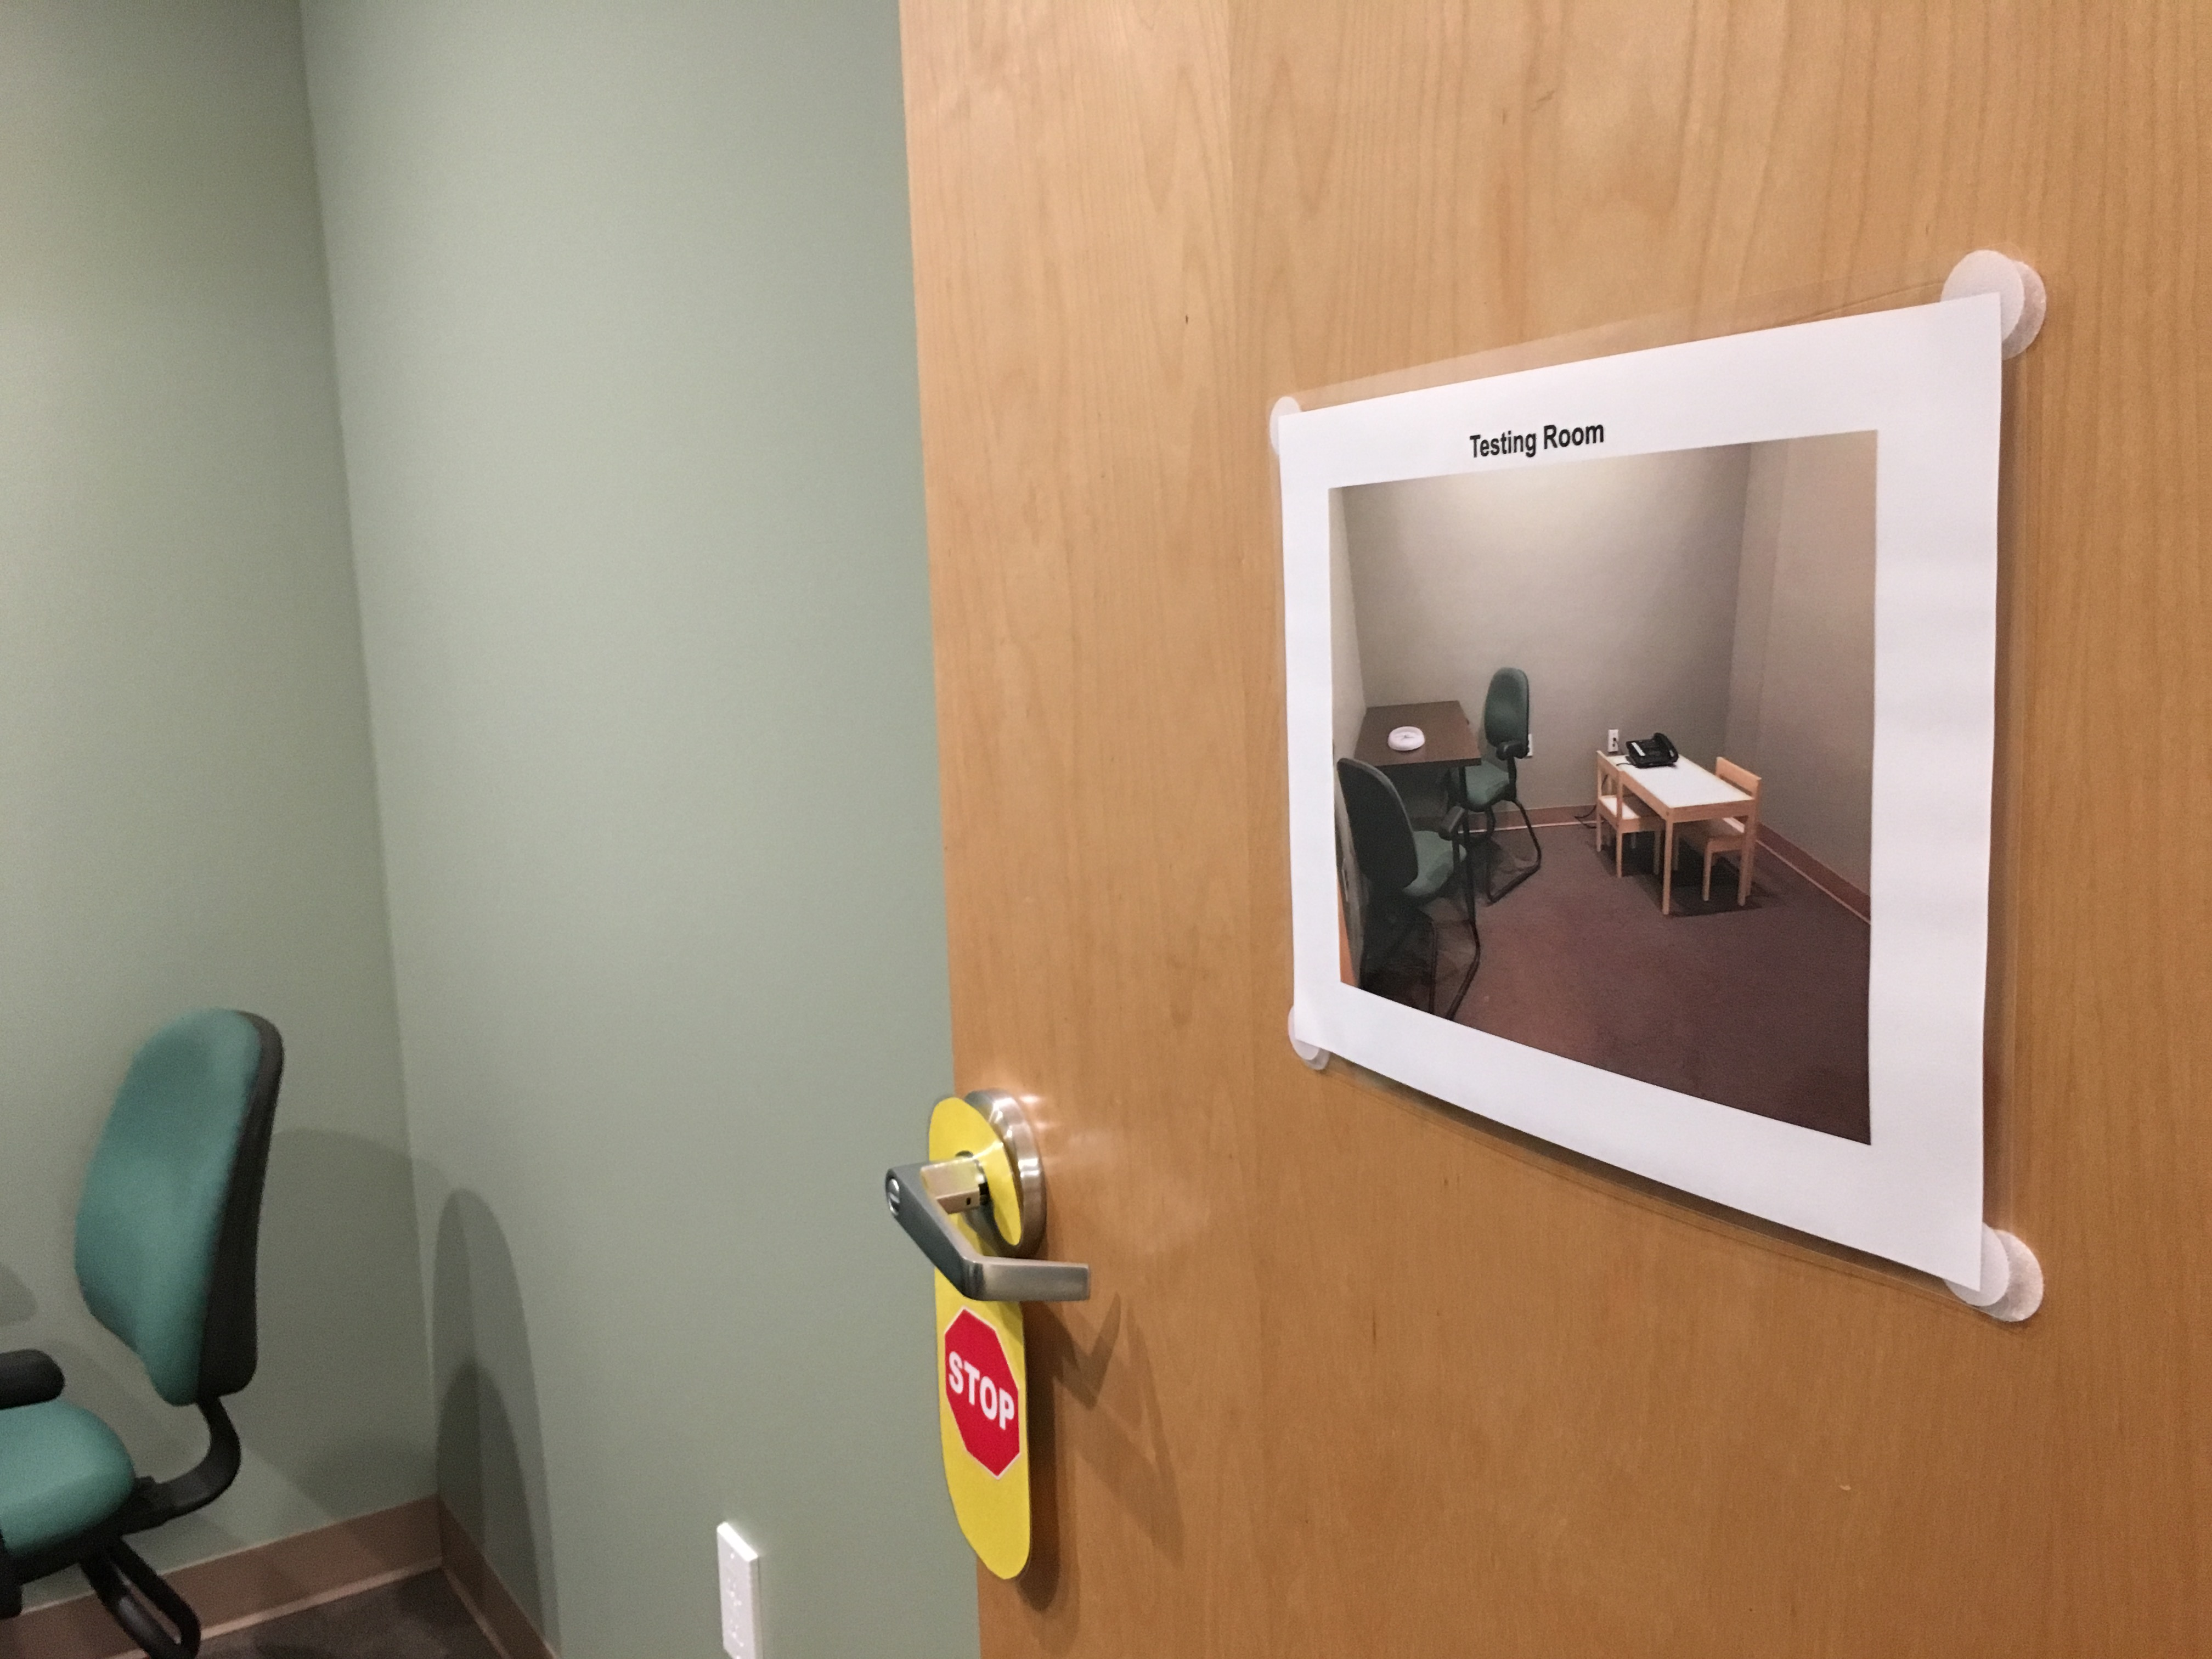 The doors at Marne Street Clinic have pictures of the inside of the room so kids know what to expect when they walk in.